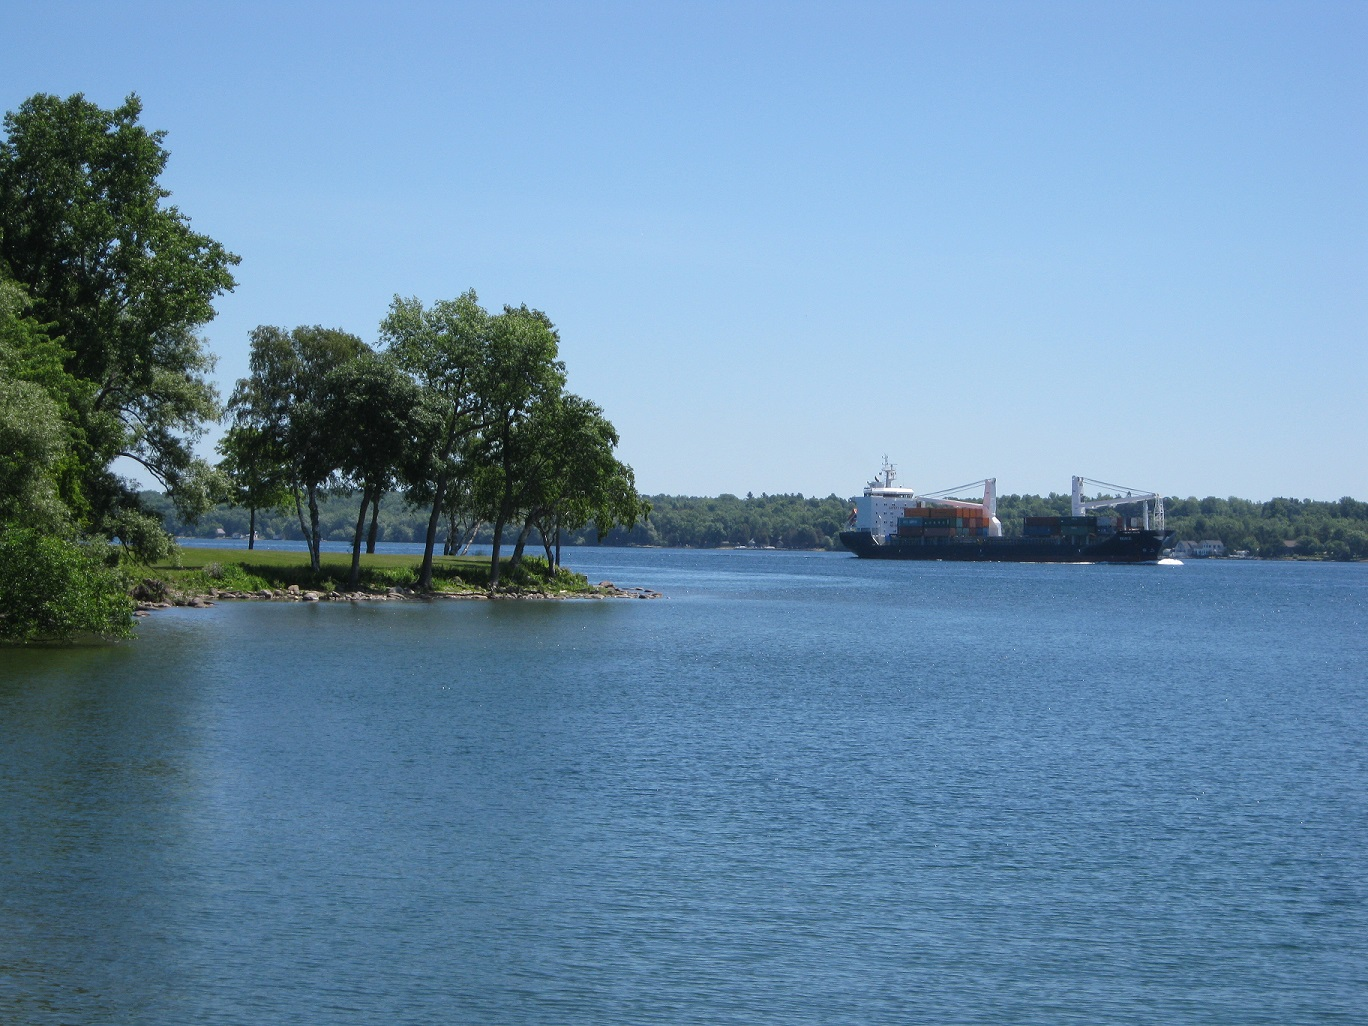 view of st. lawrence river from maitland lookout with a big ship in the water